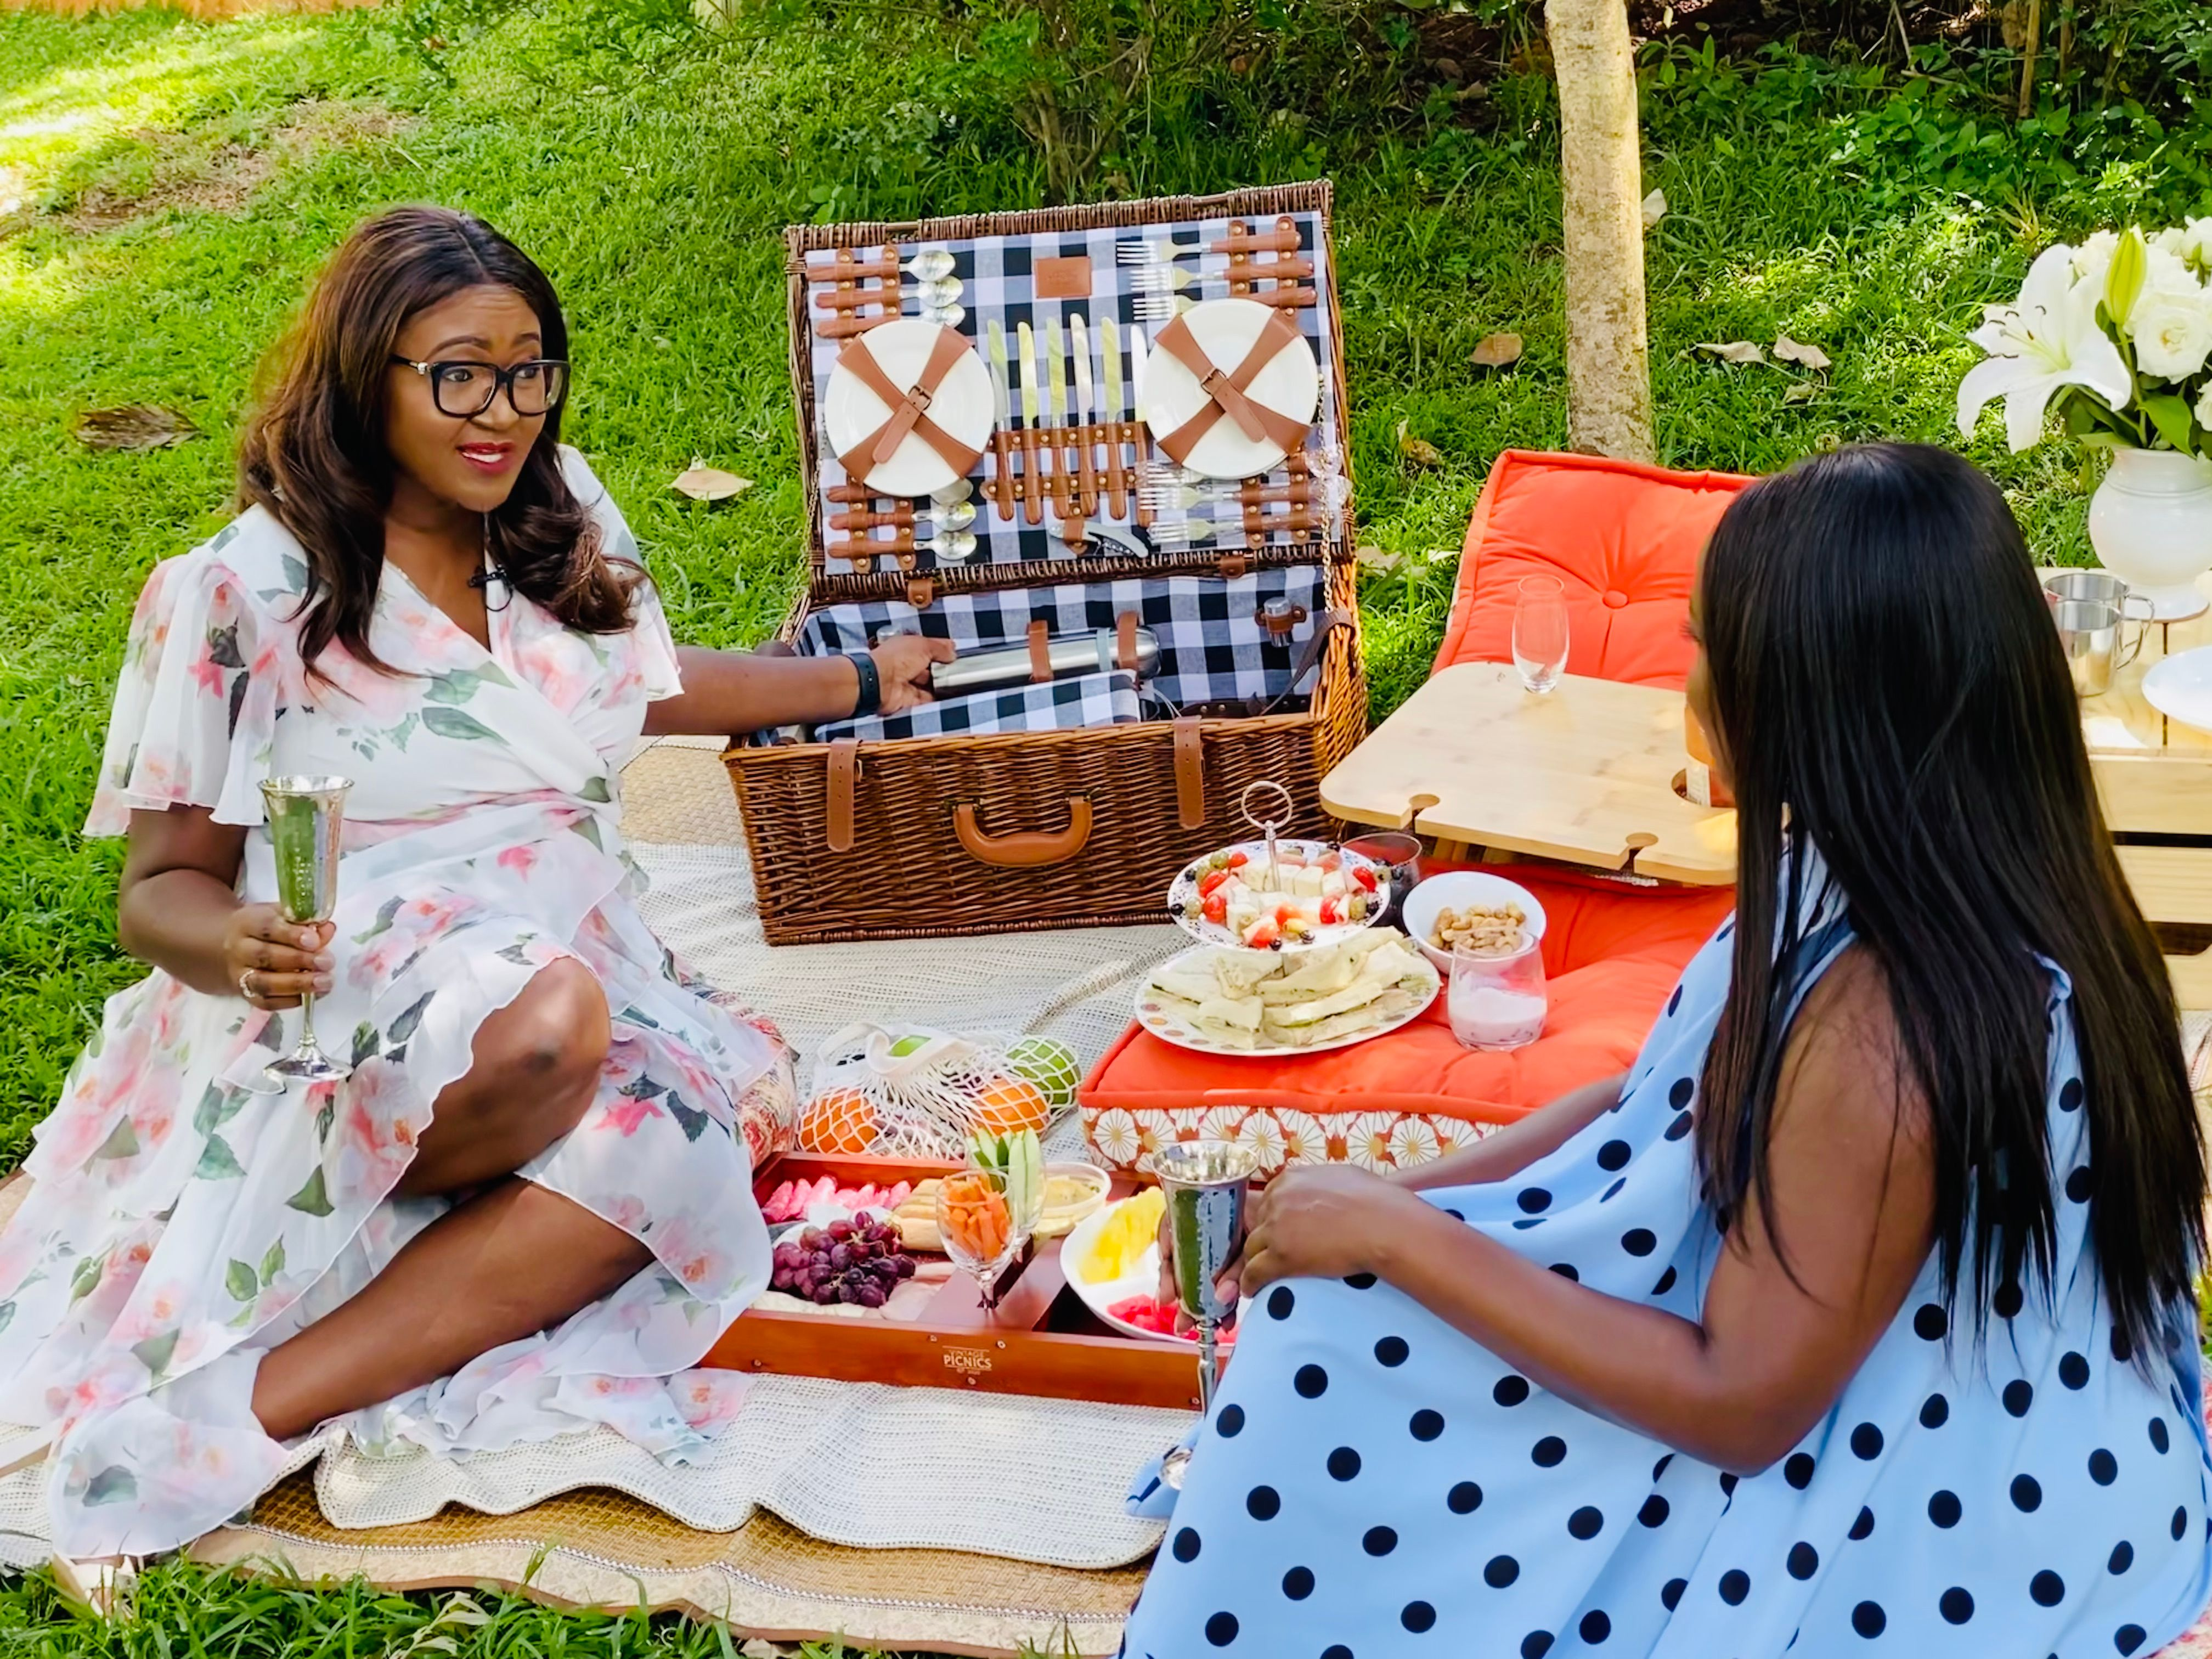 Vintage Picnic: The Pandemic Project That Is Redefining DIY Picnics